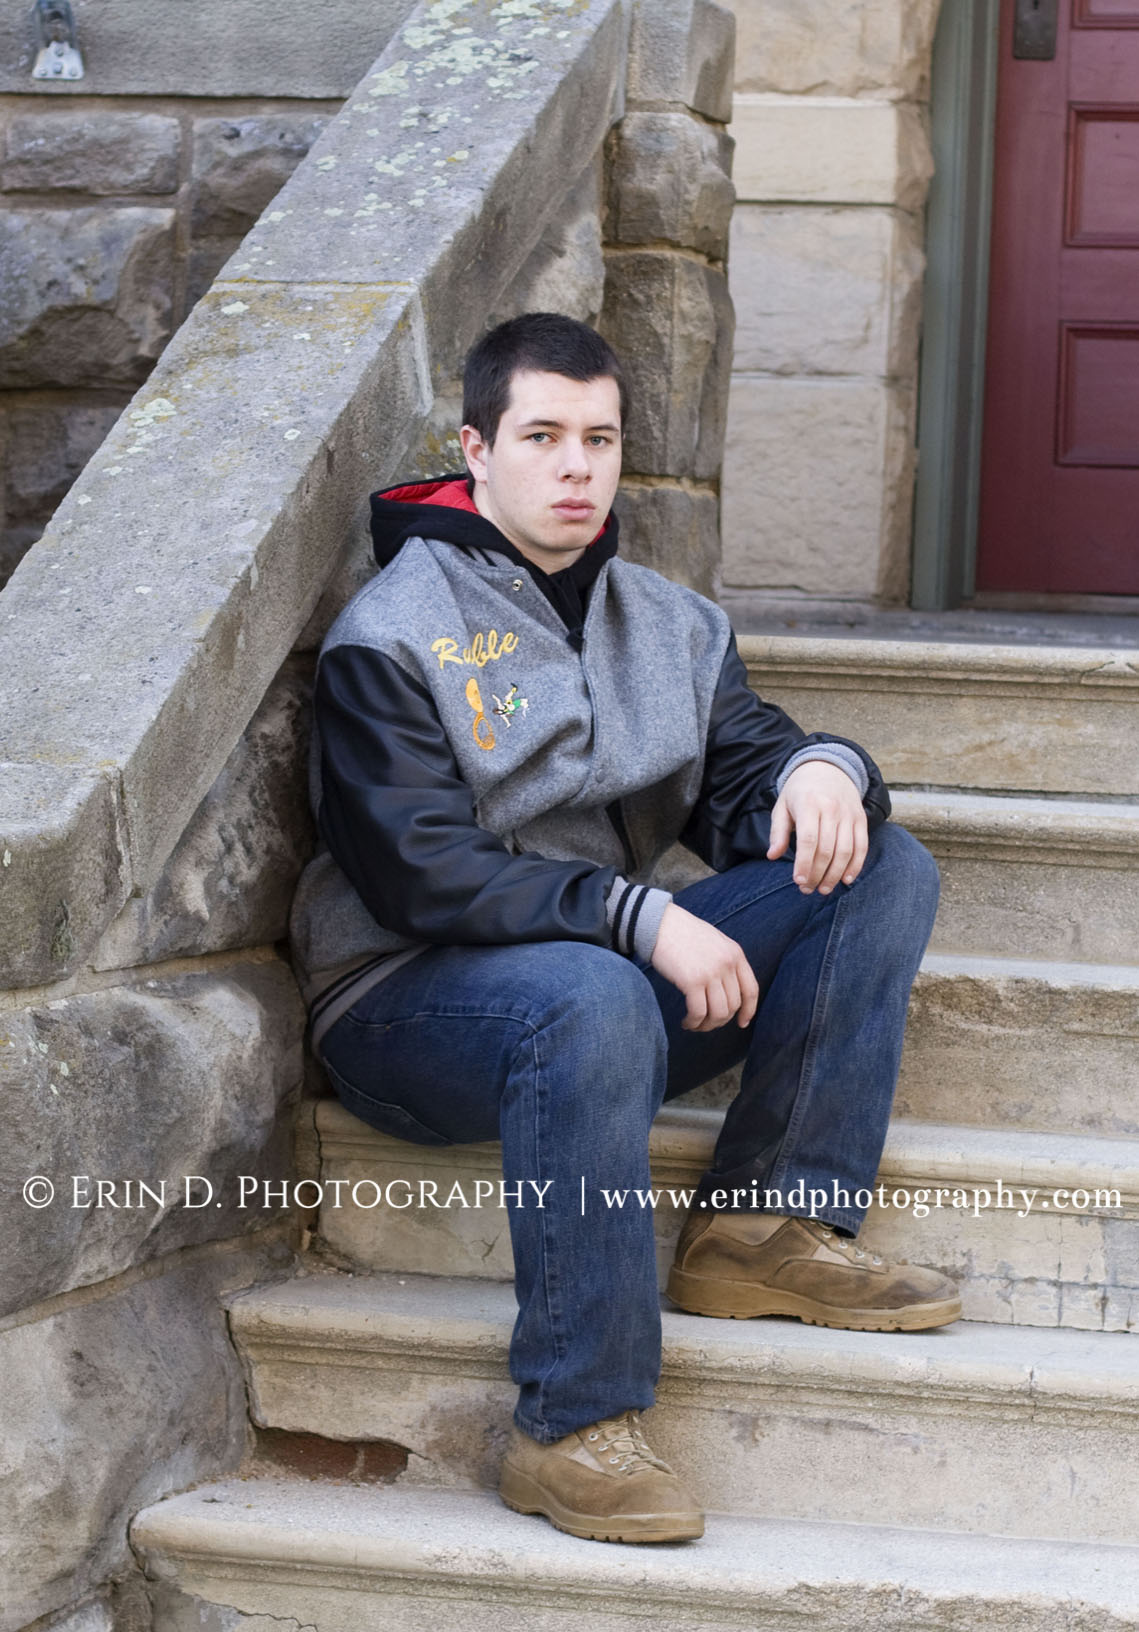 Guy Senior Portraits | © Erin D. Photography